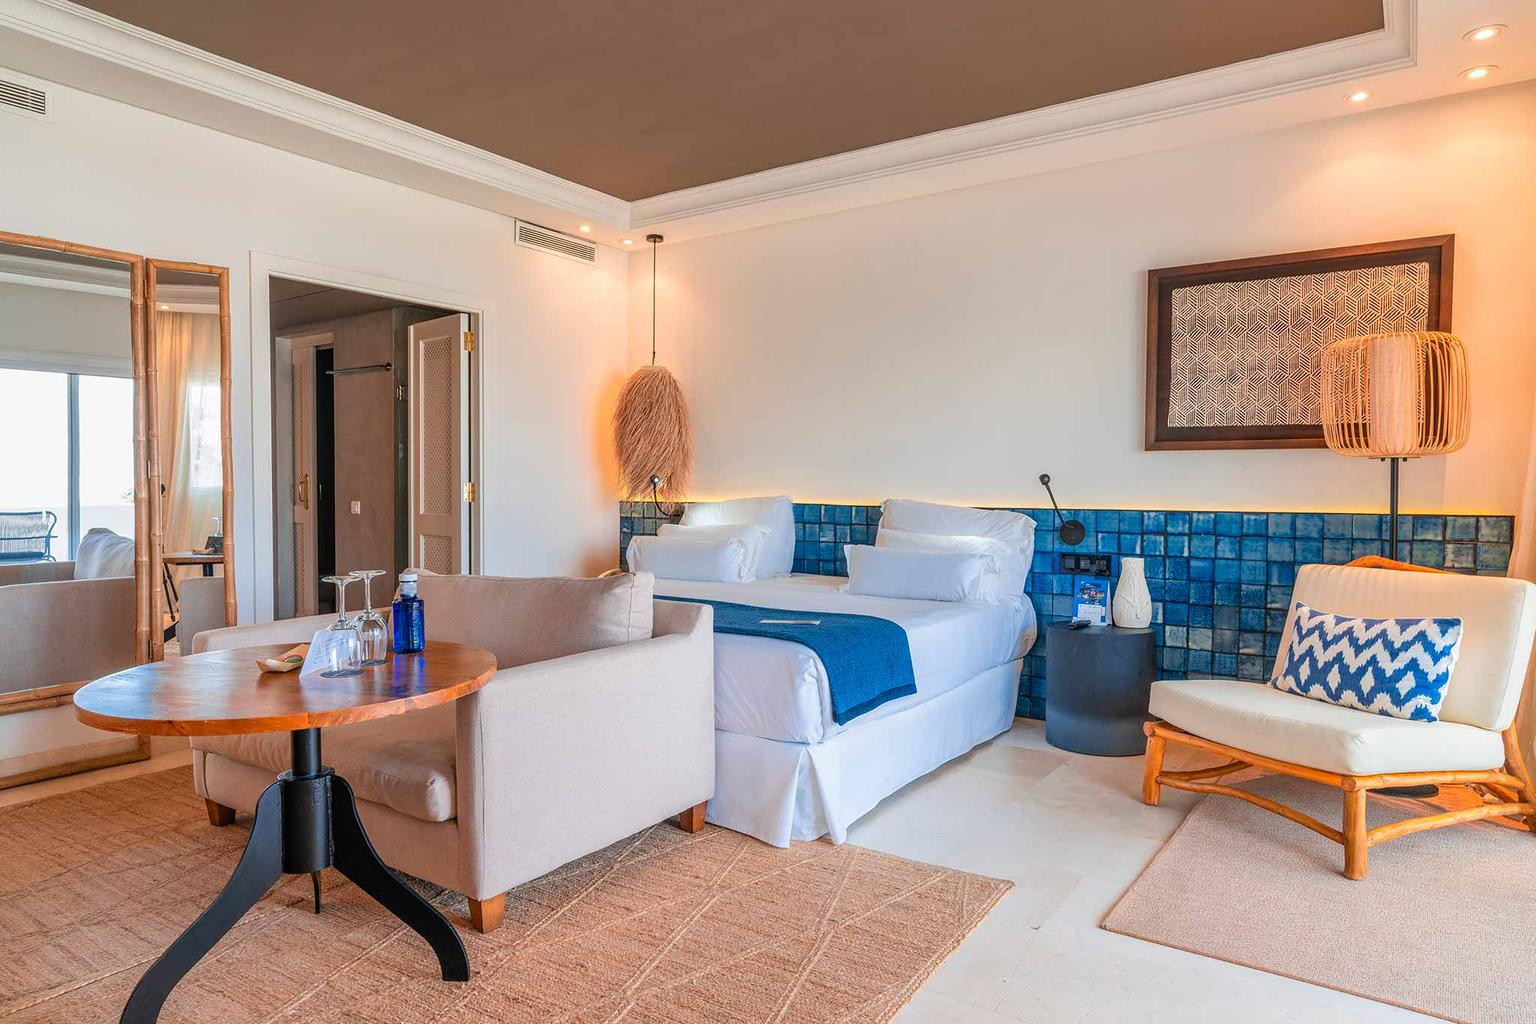 Club junior suite with ocean views hotel jardín tropical tenerife